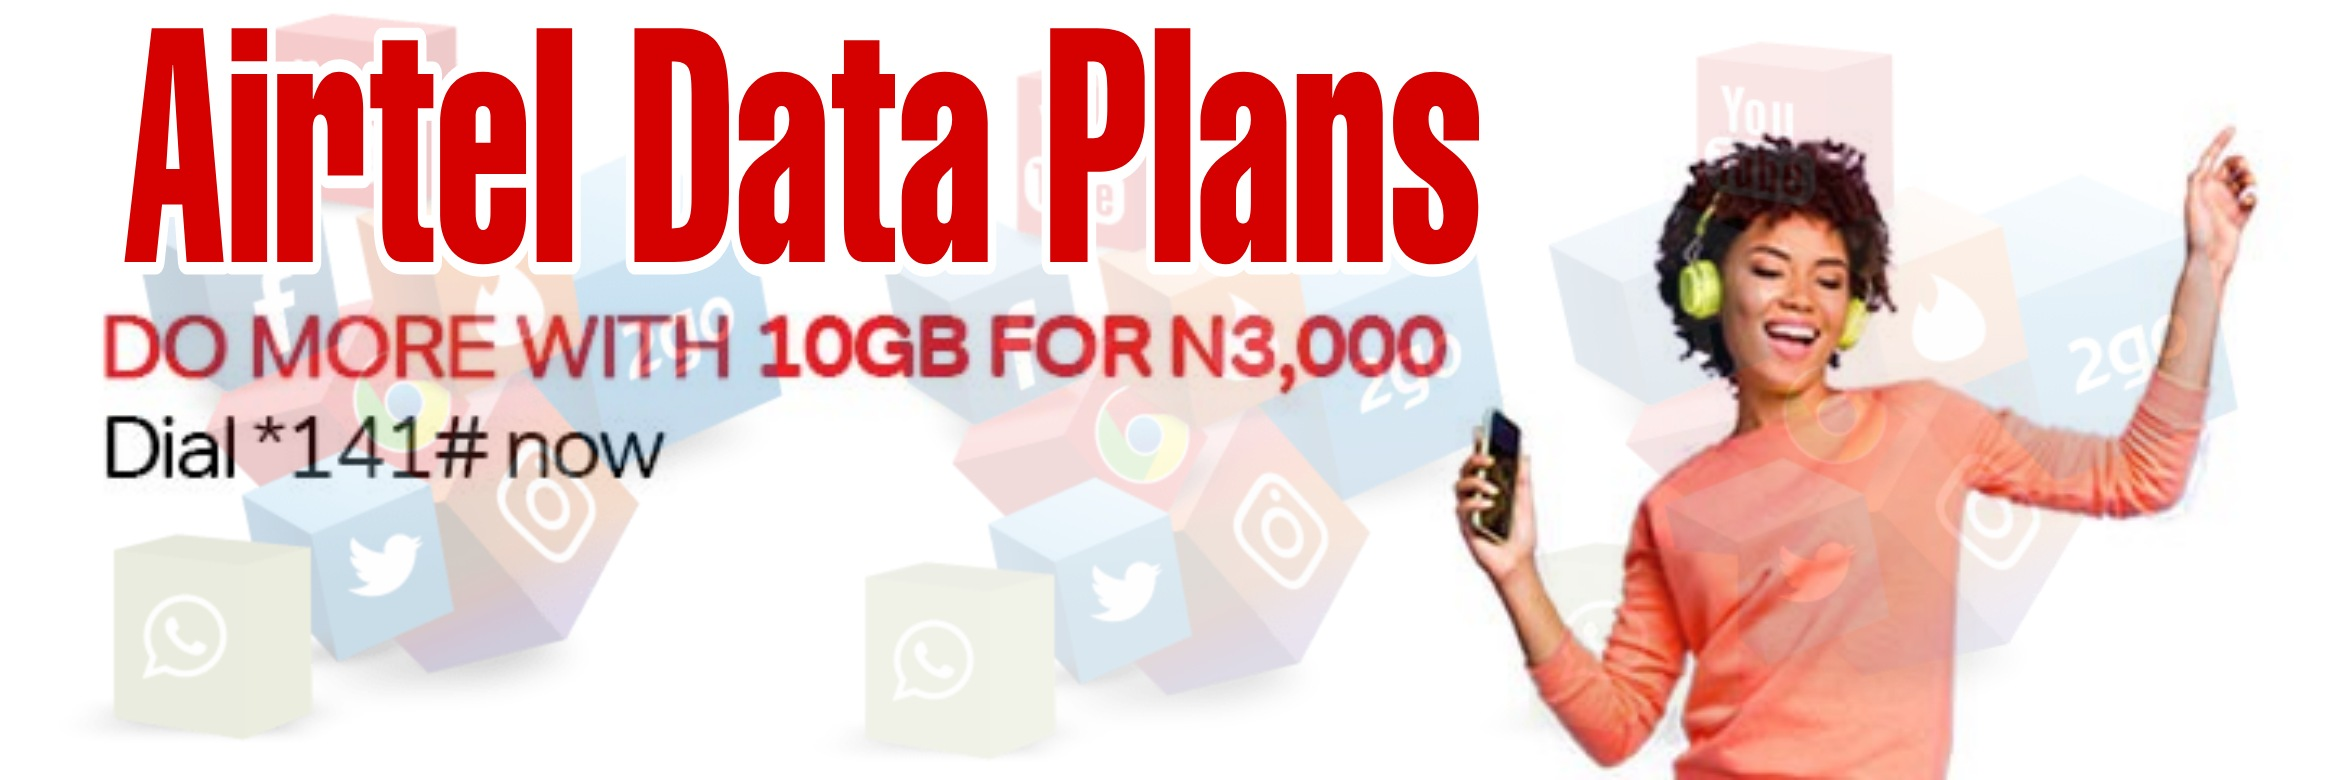 Airtel Data Plans Bundles